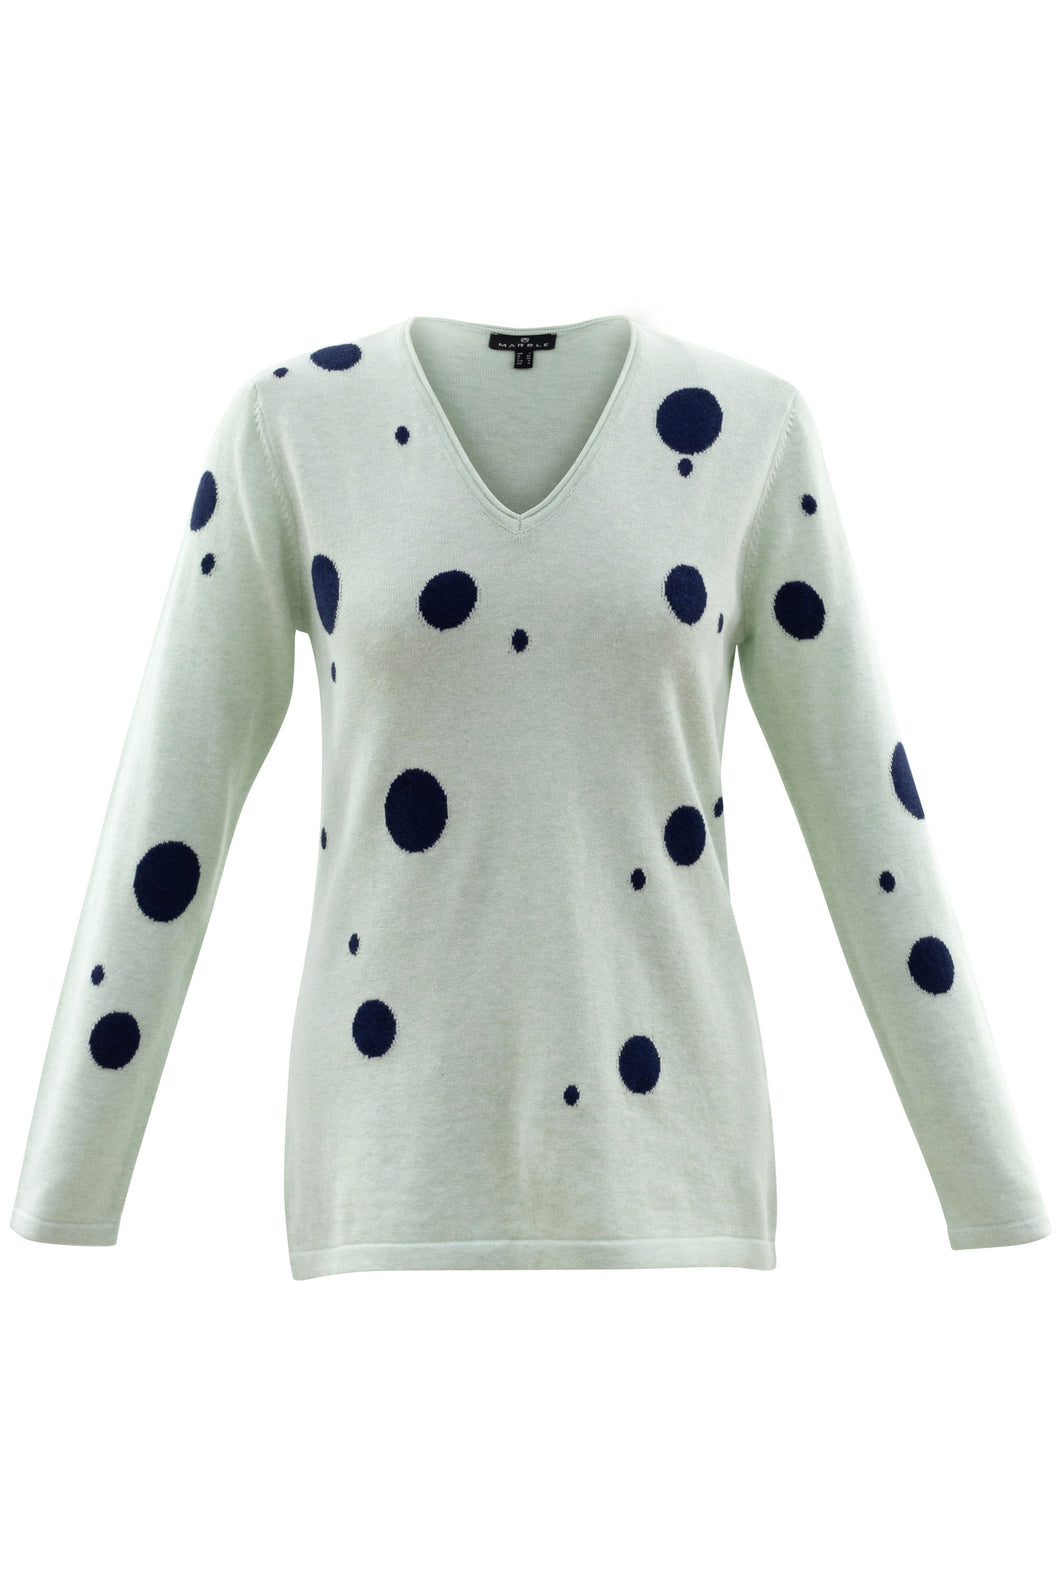 Marble Pullover - Style 5882-188